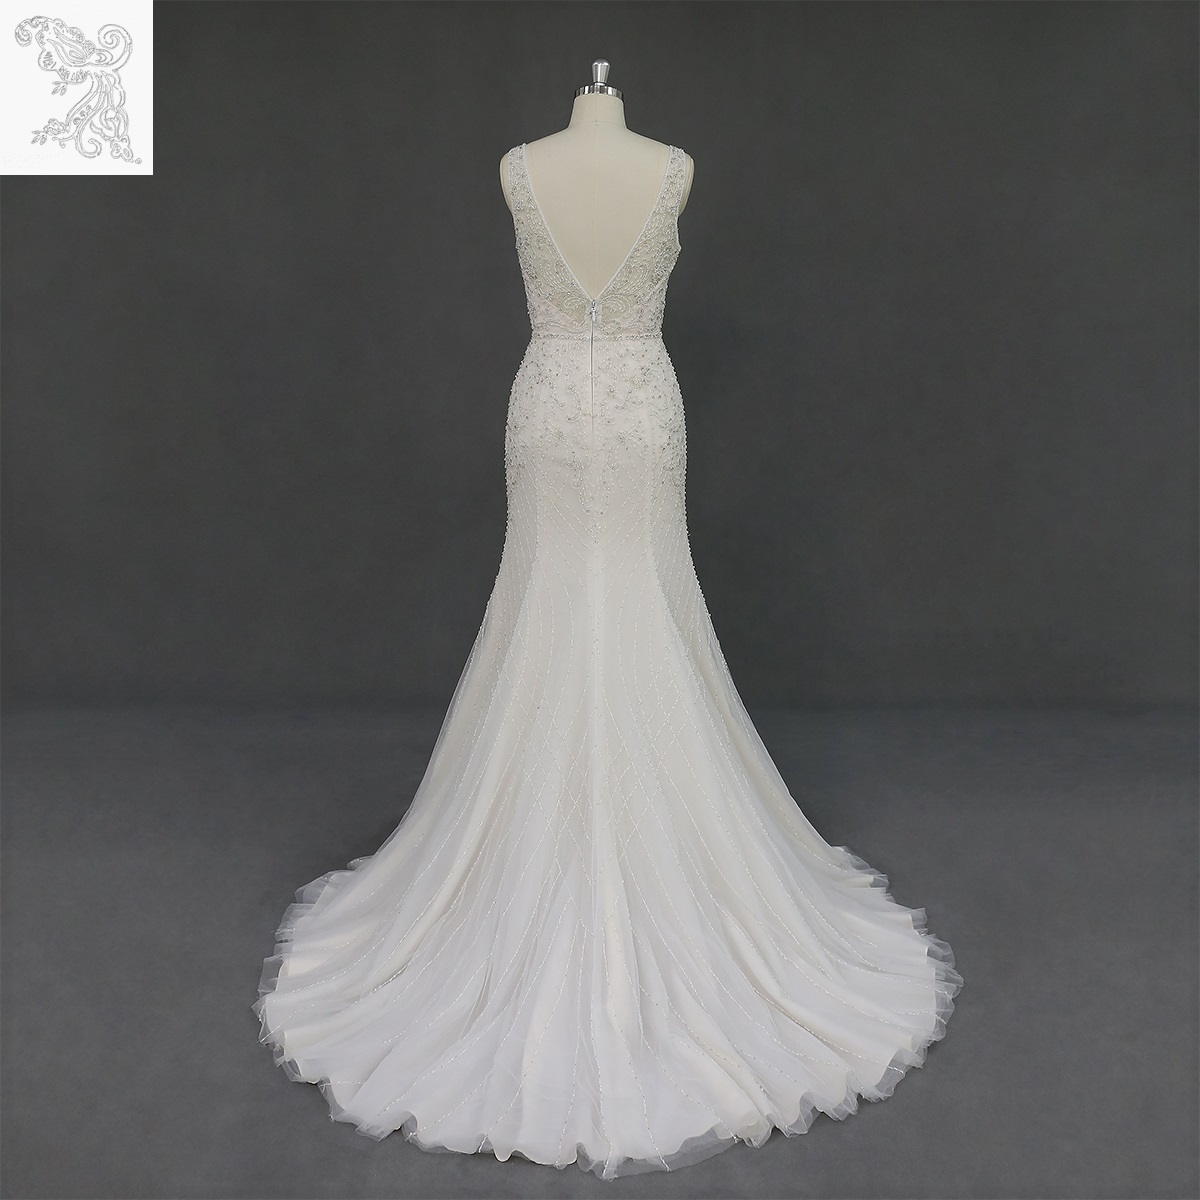 2020 Bridal Gown